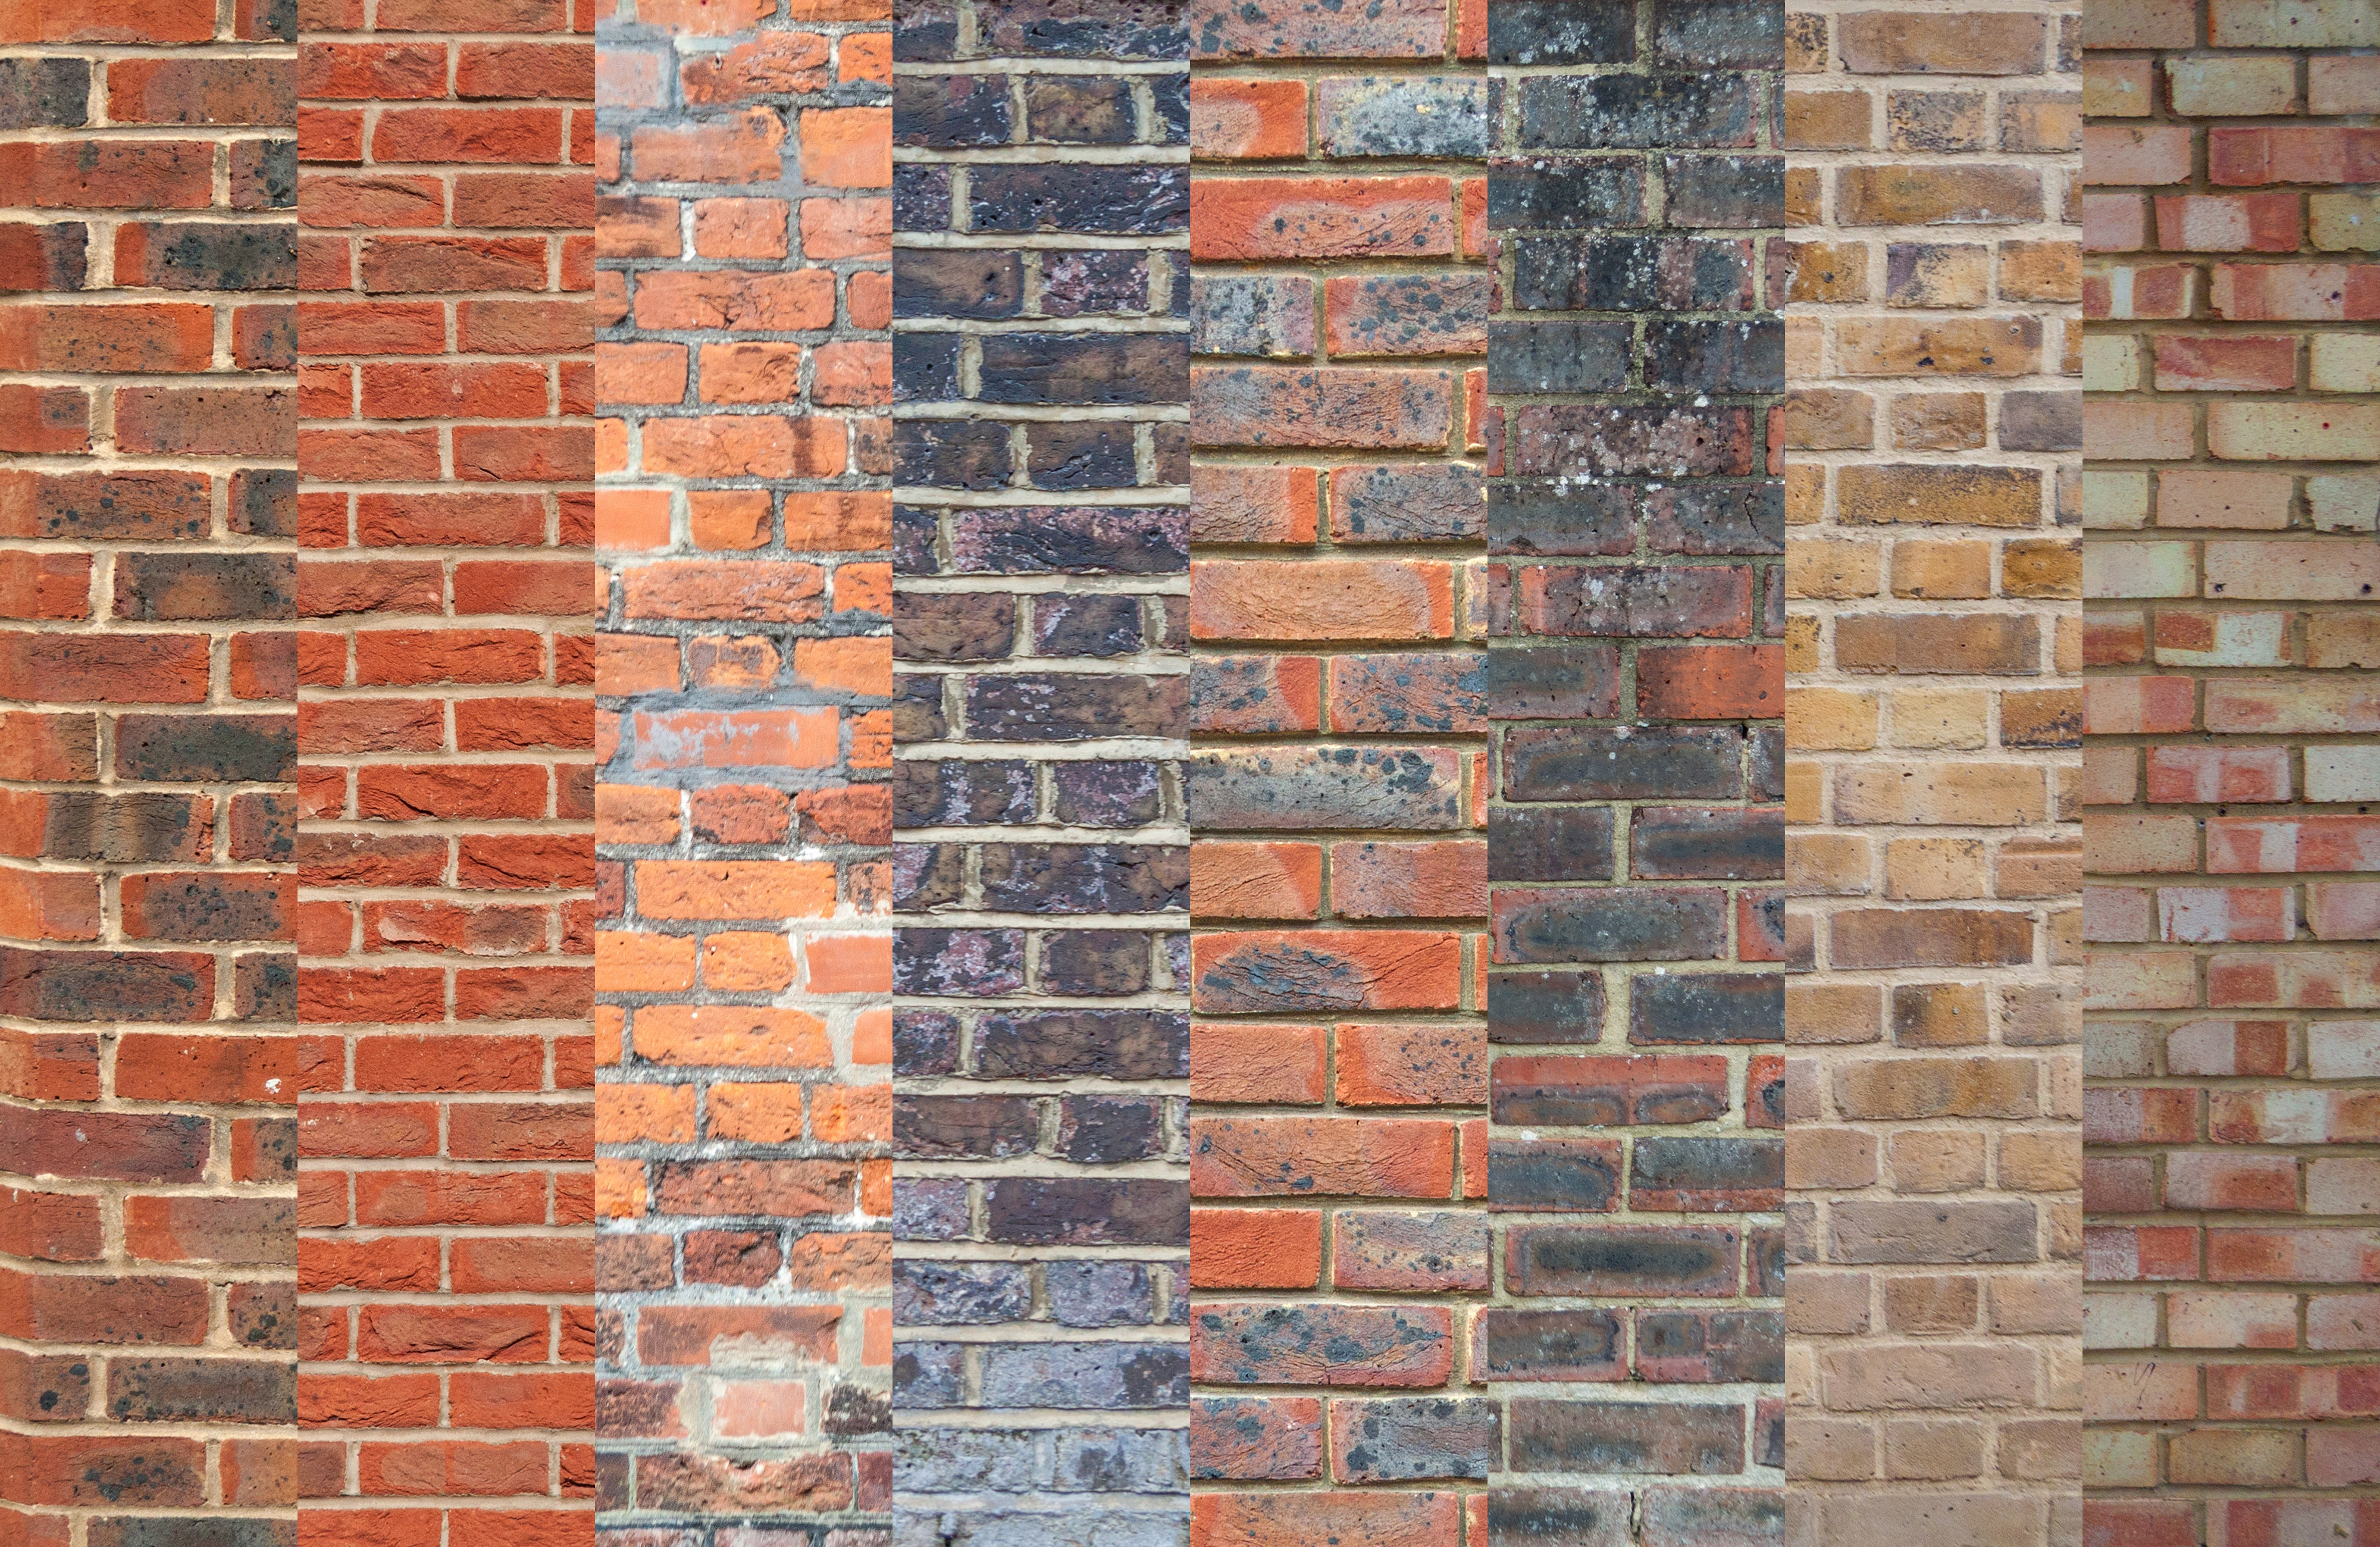 Brick Wall Textures and Backgrounds